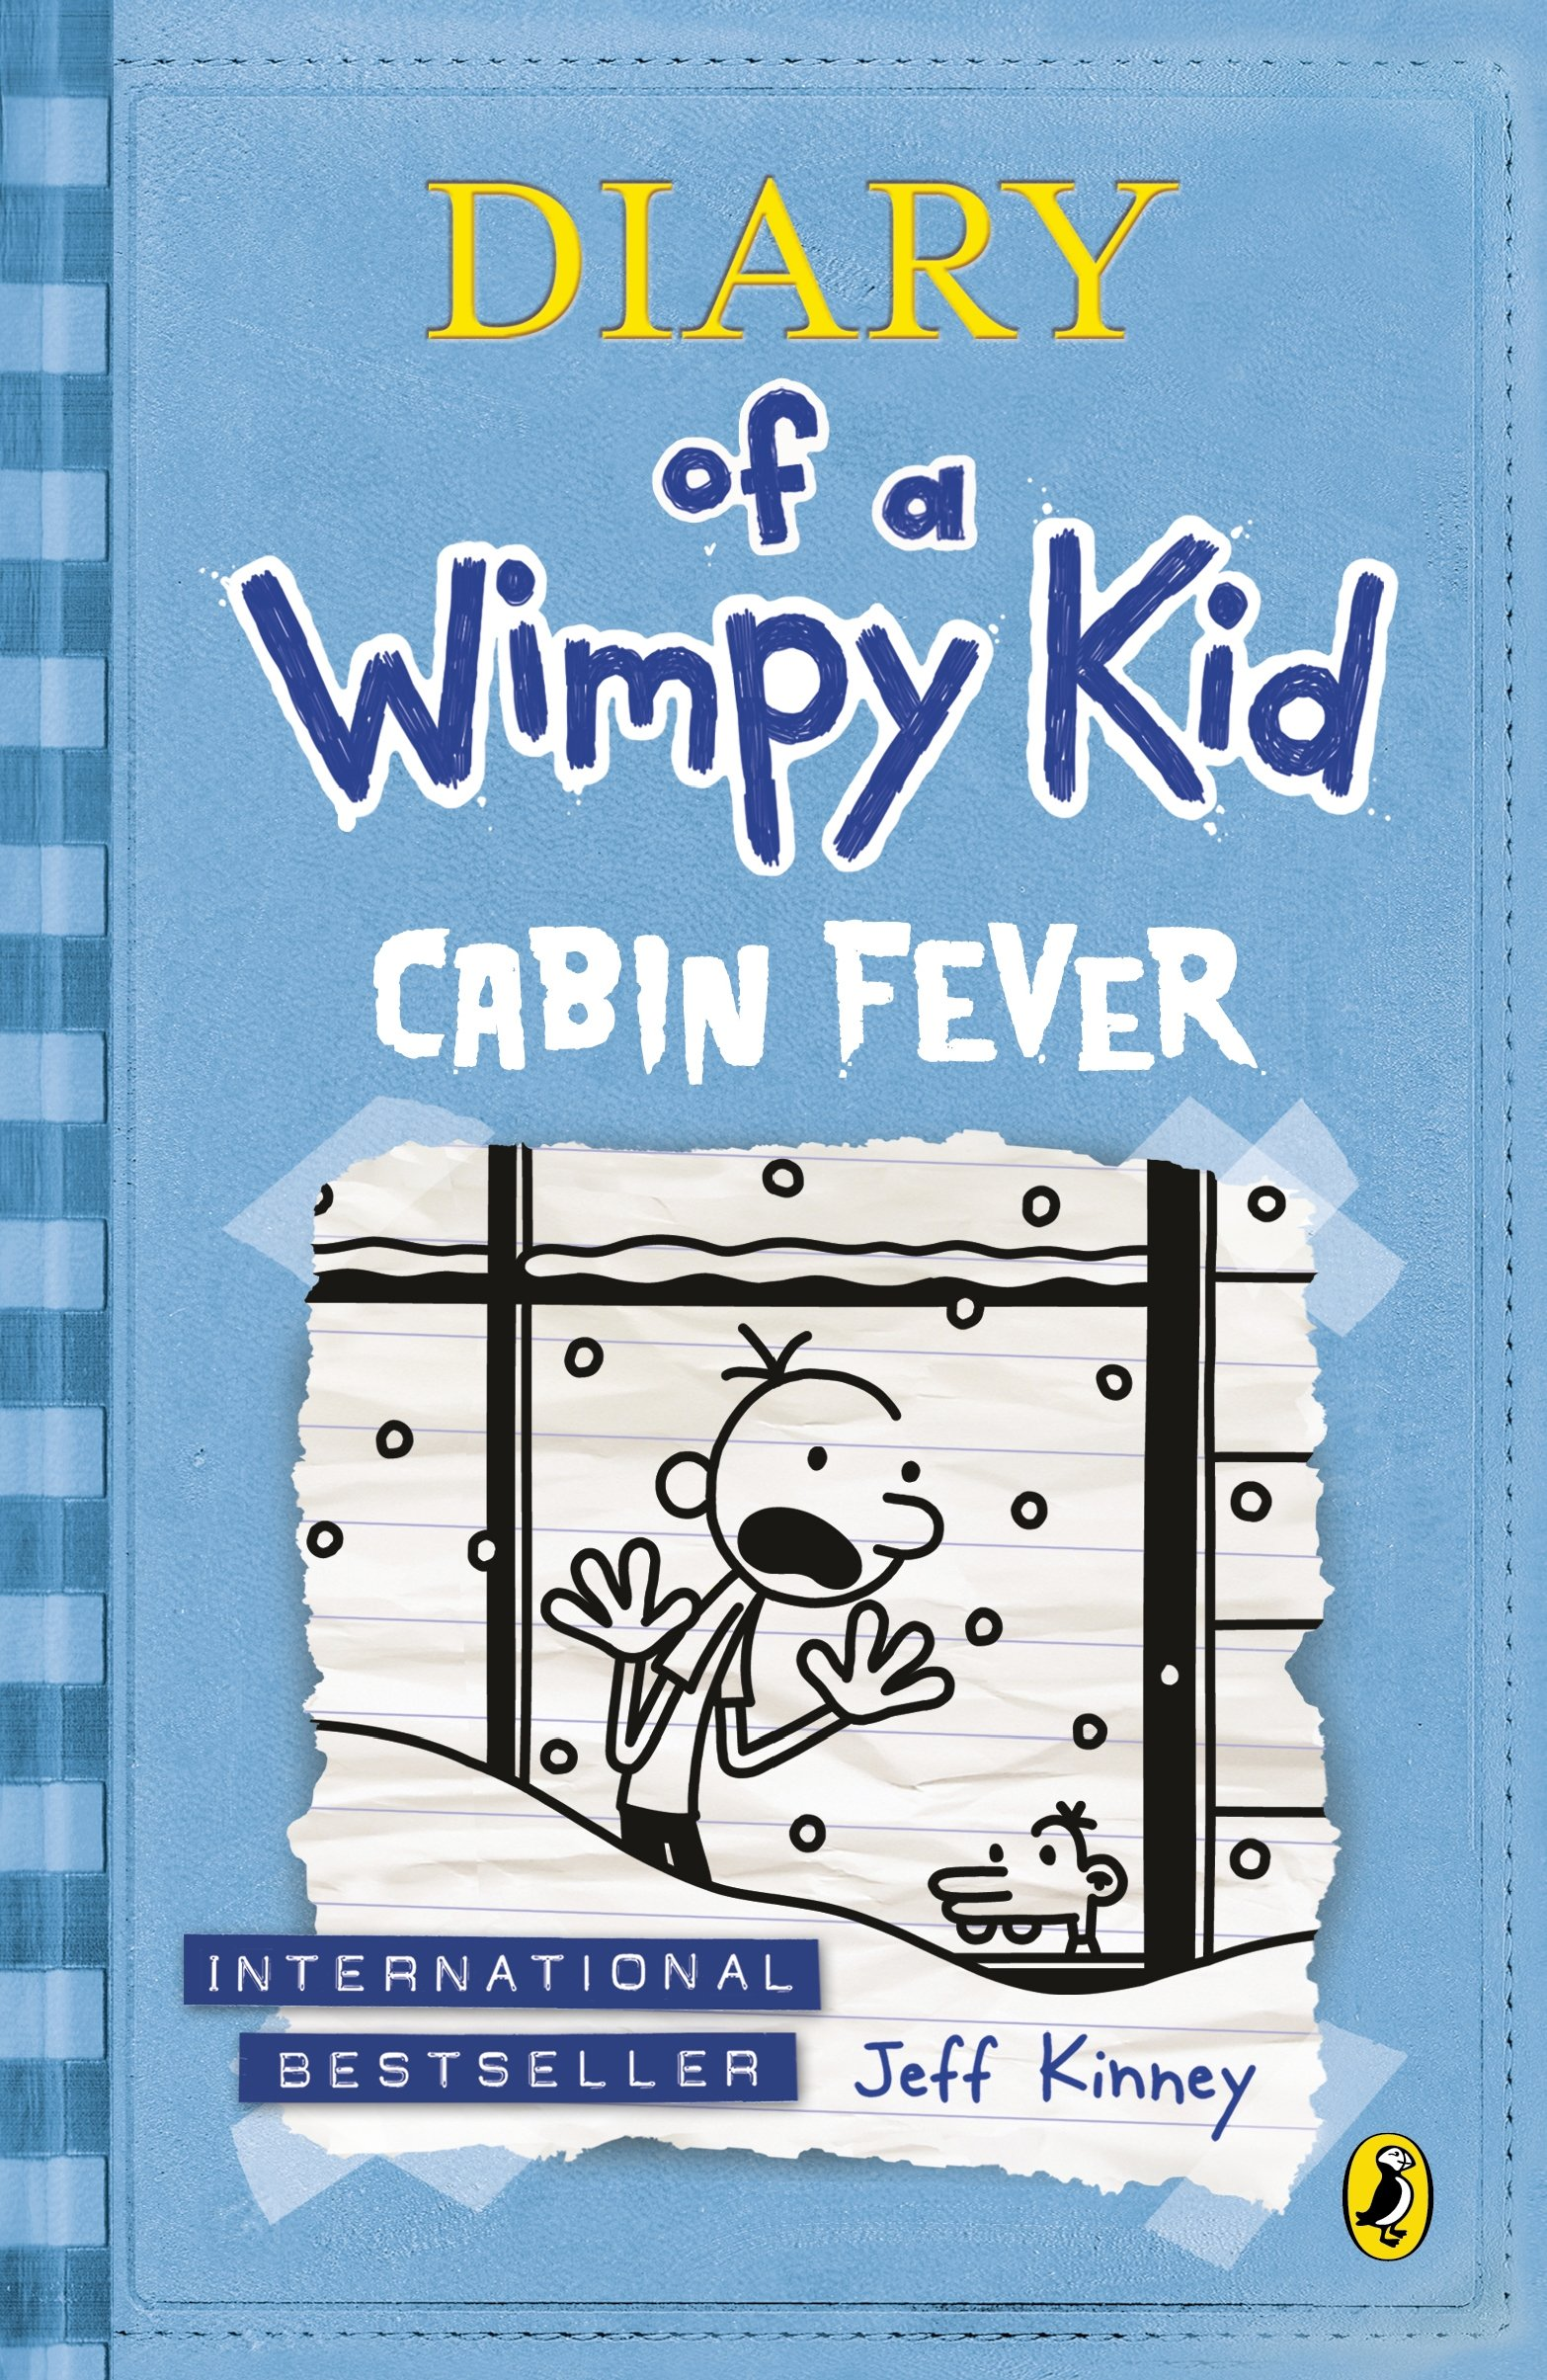 DIARY OF WIMPY KID EPUB DOWNLOAD